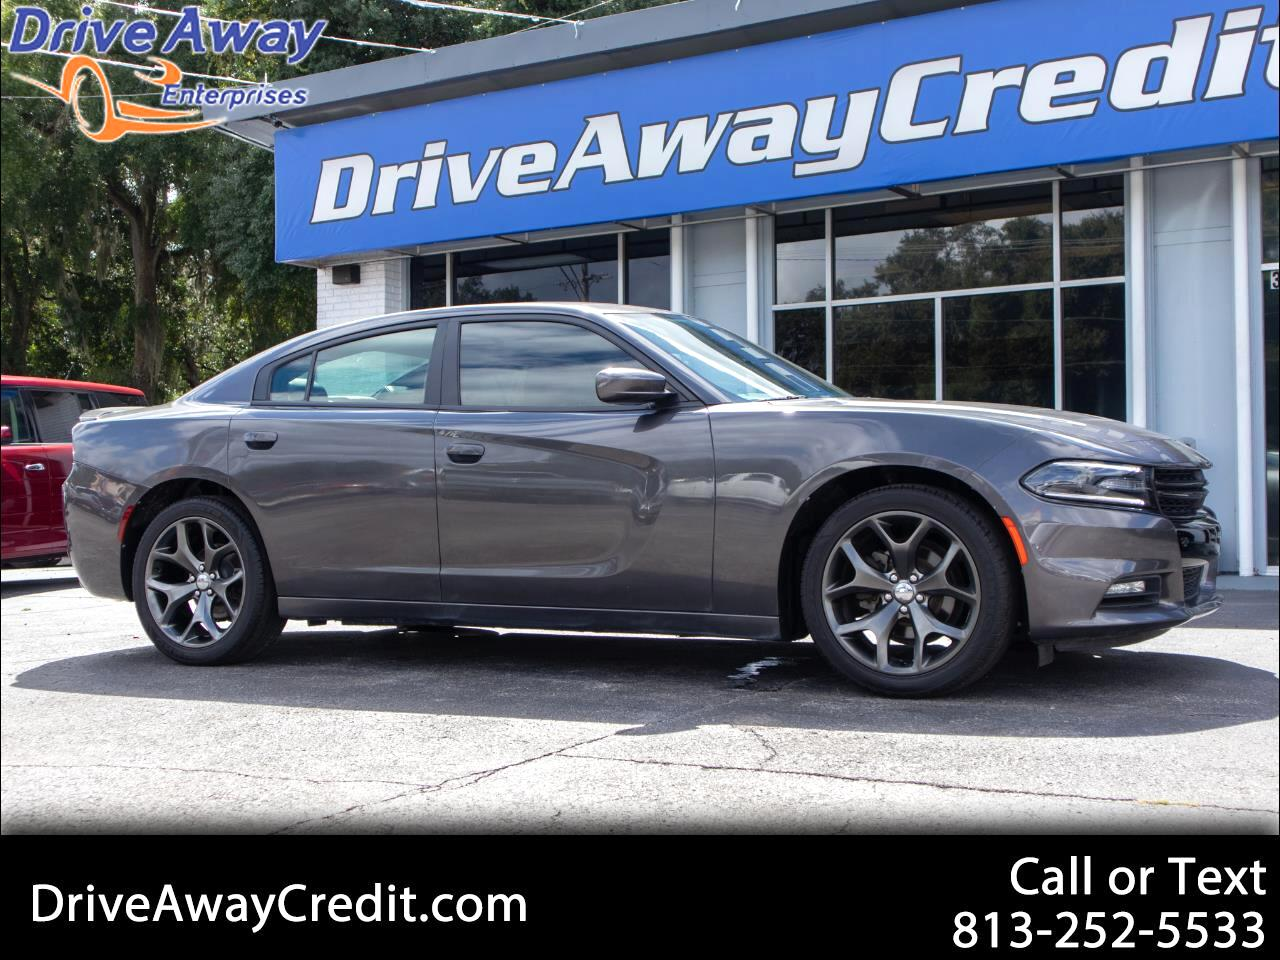 2015 Dodge Charger 4dr Sdn Rallye Plus RWD